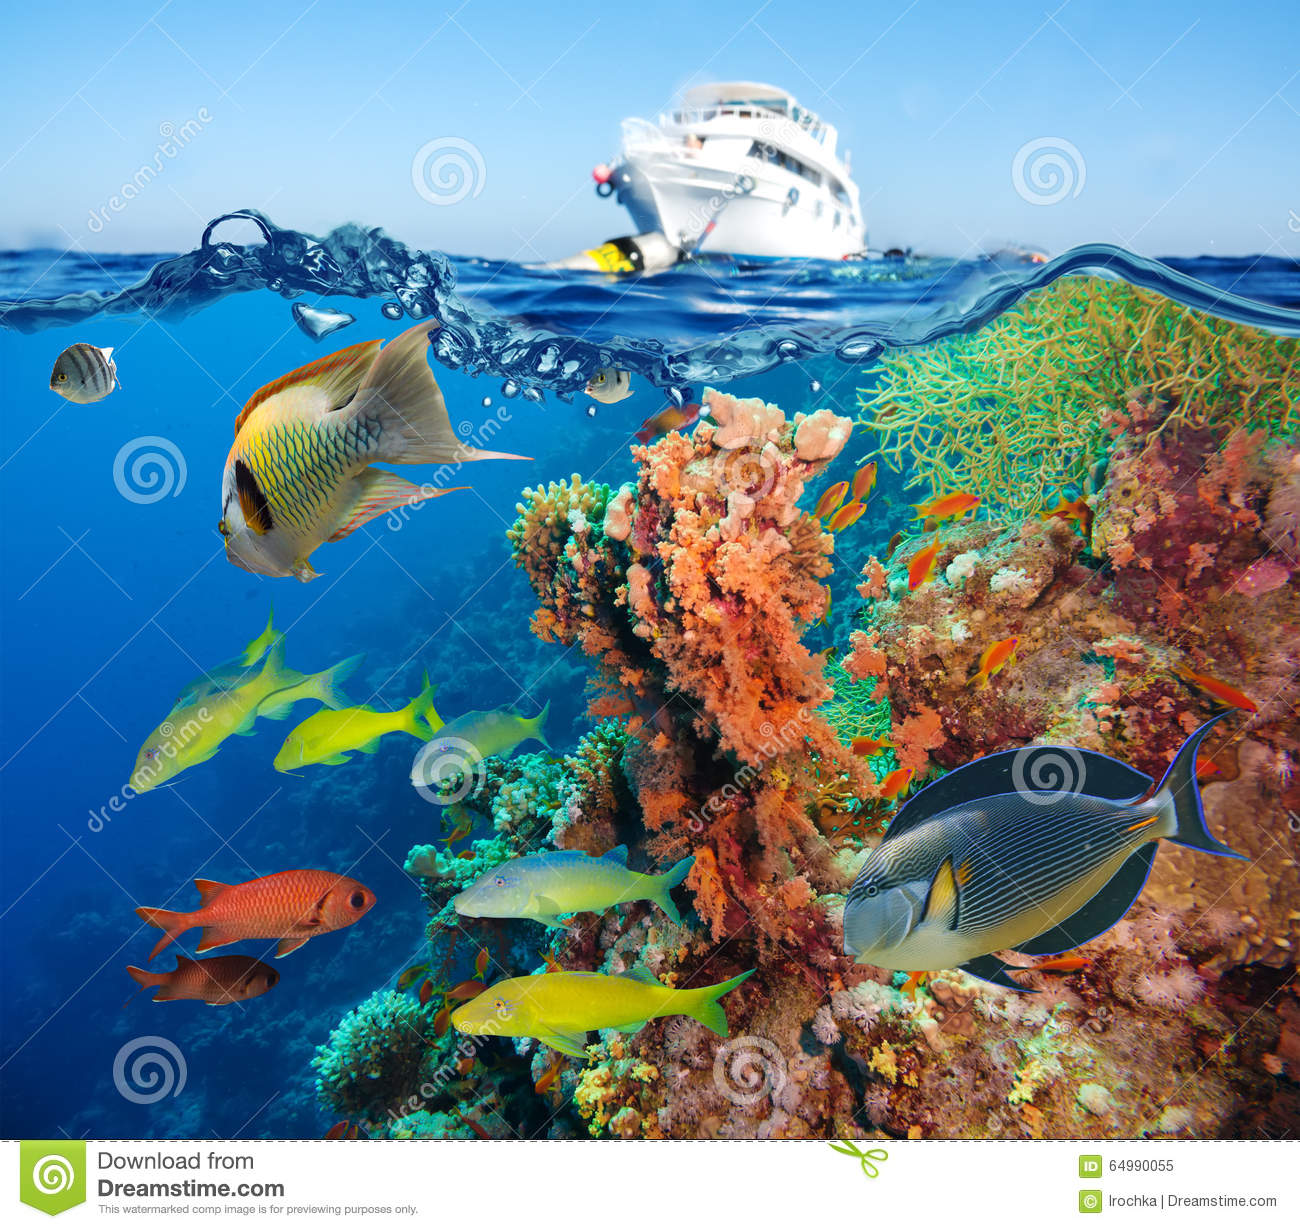 Colorful underwater reef with coral and sponges stock for Small tropical fish